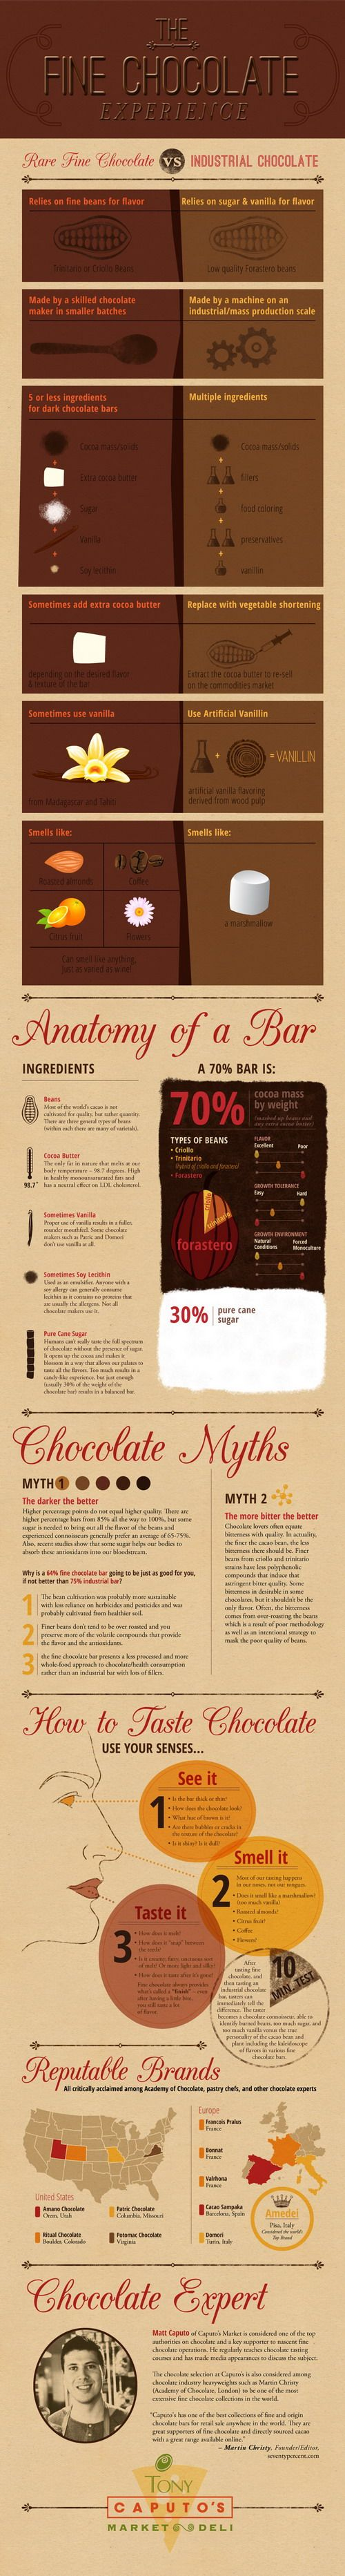 24 best Infographics: Chocolate images on Pinterest | Infographics ...